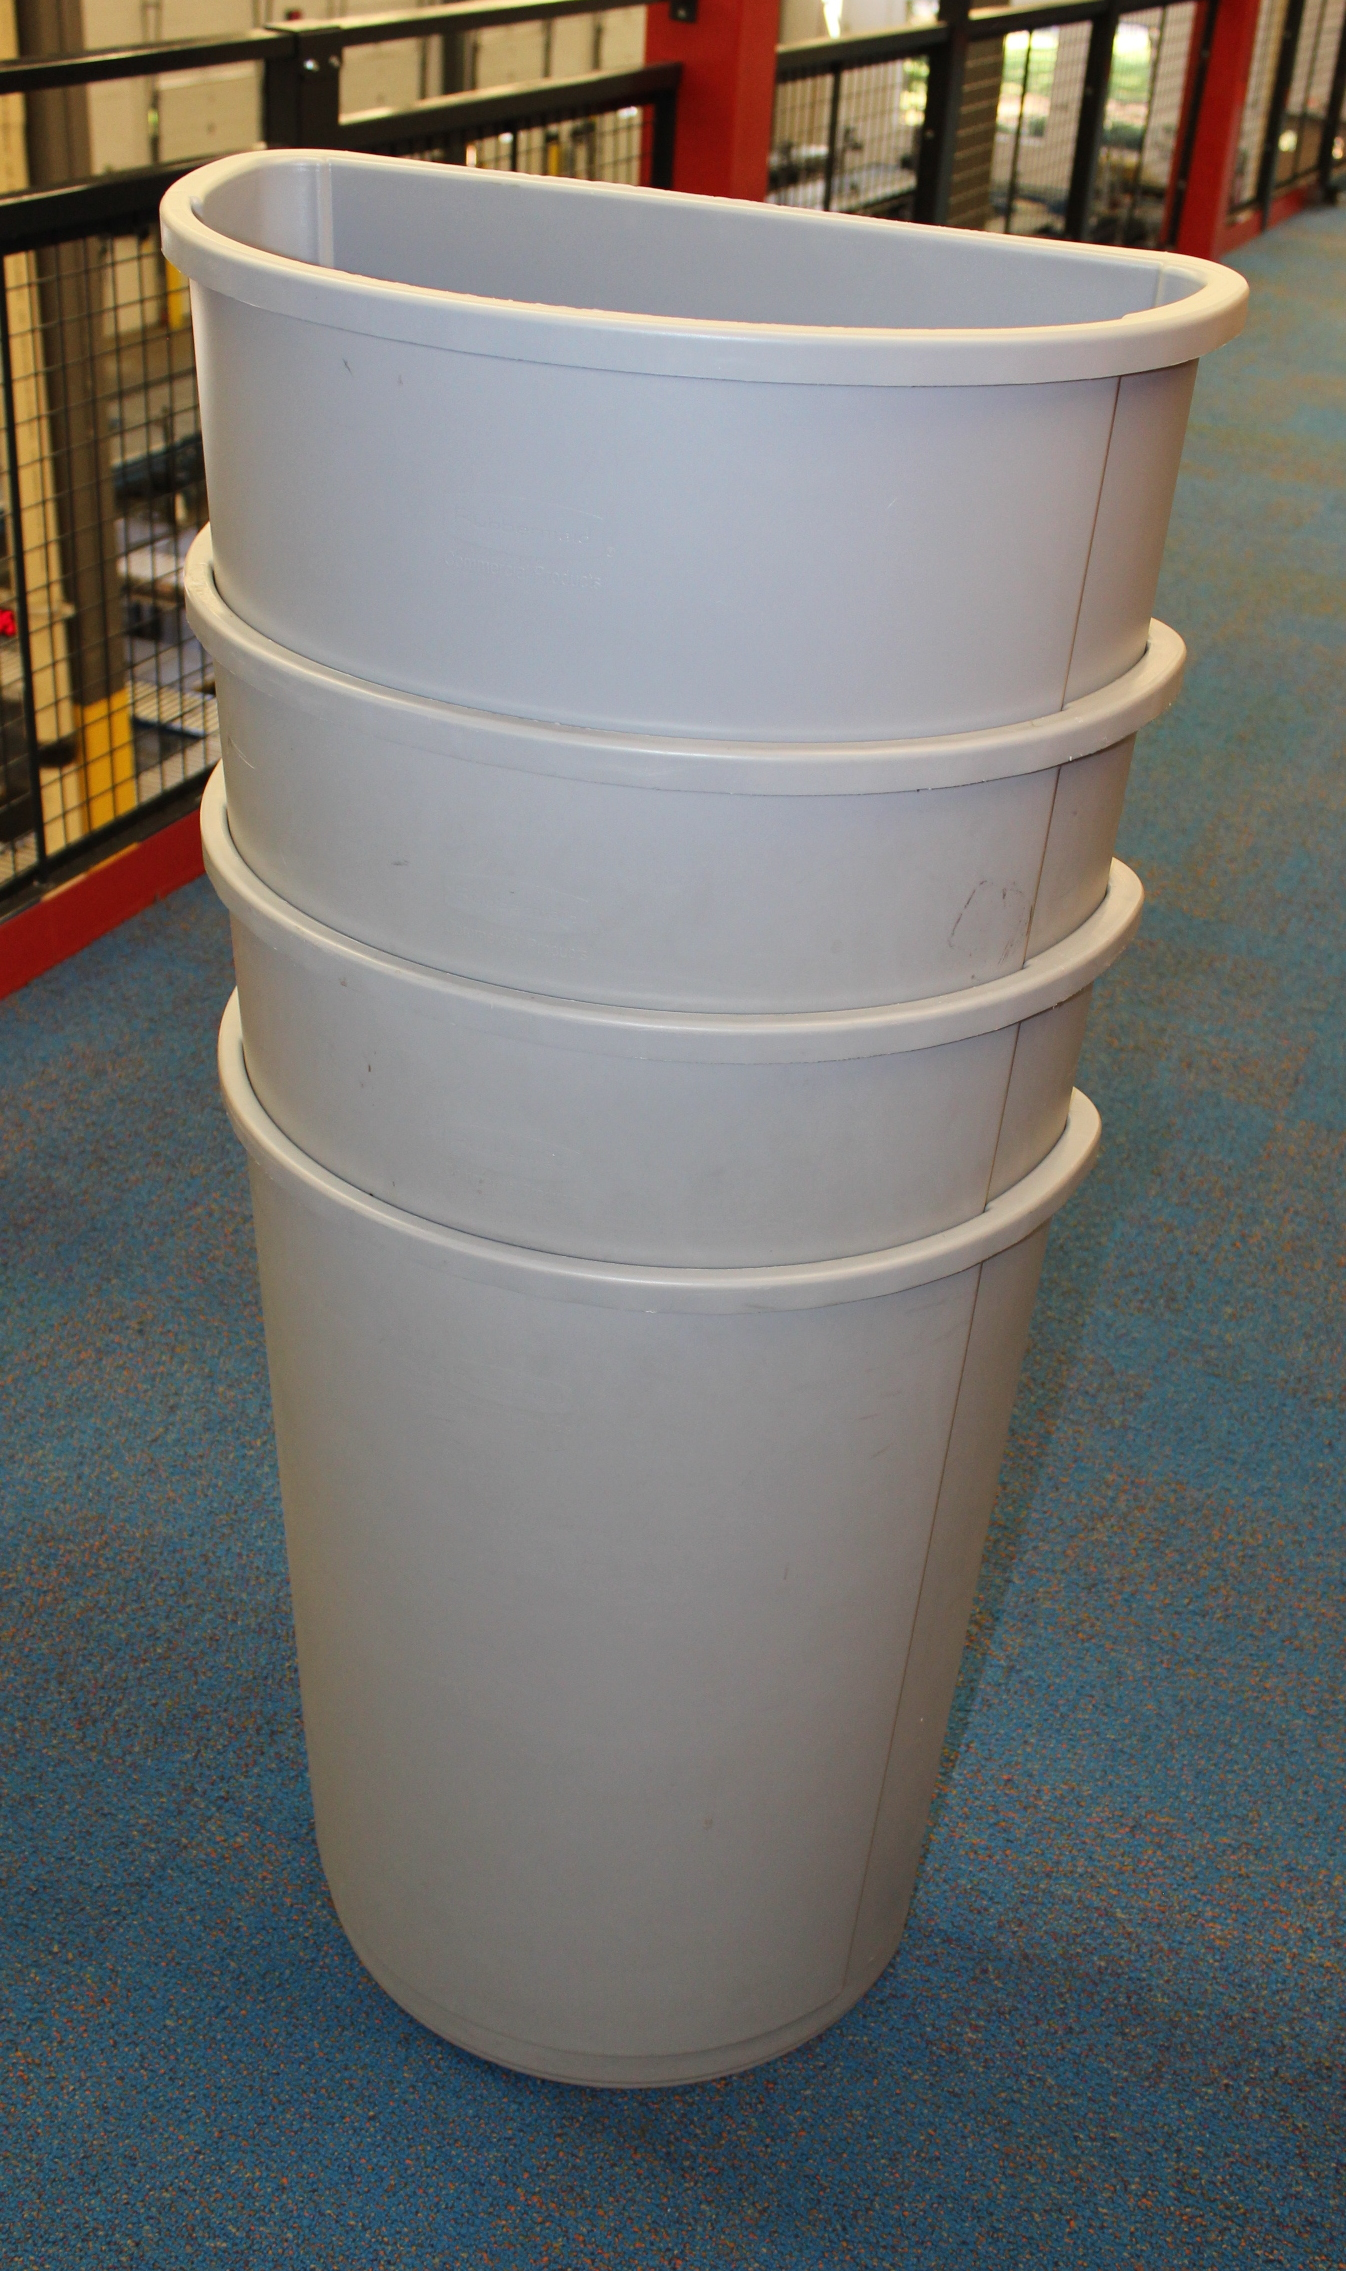 Lot 48 - 5 RUBBERMAID 3520 TRASH CAN